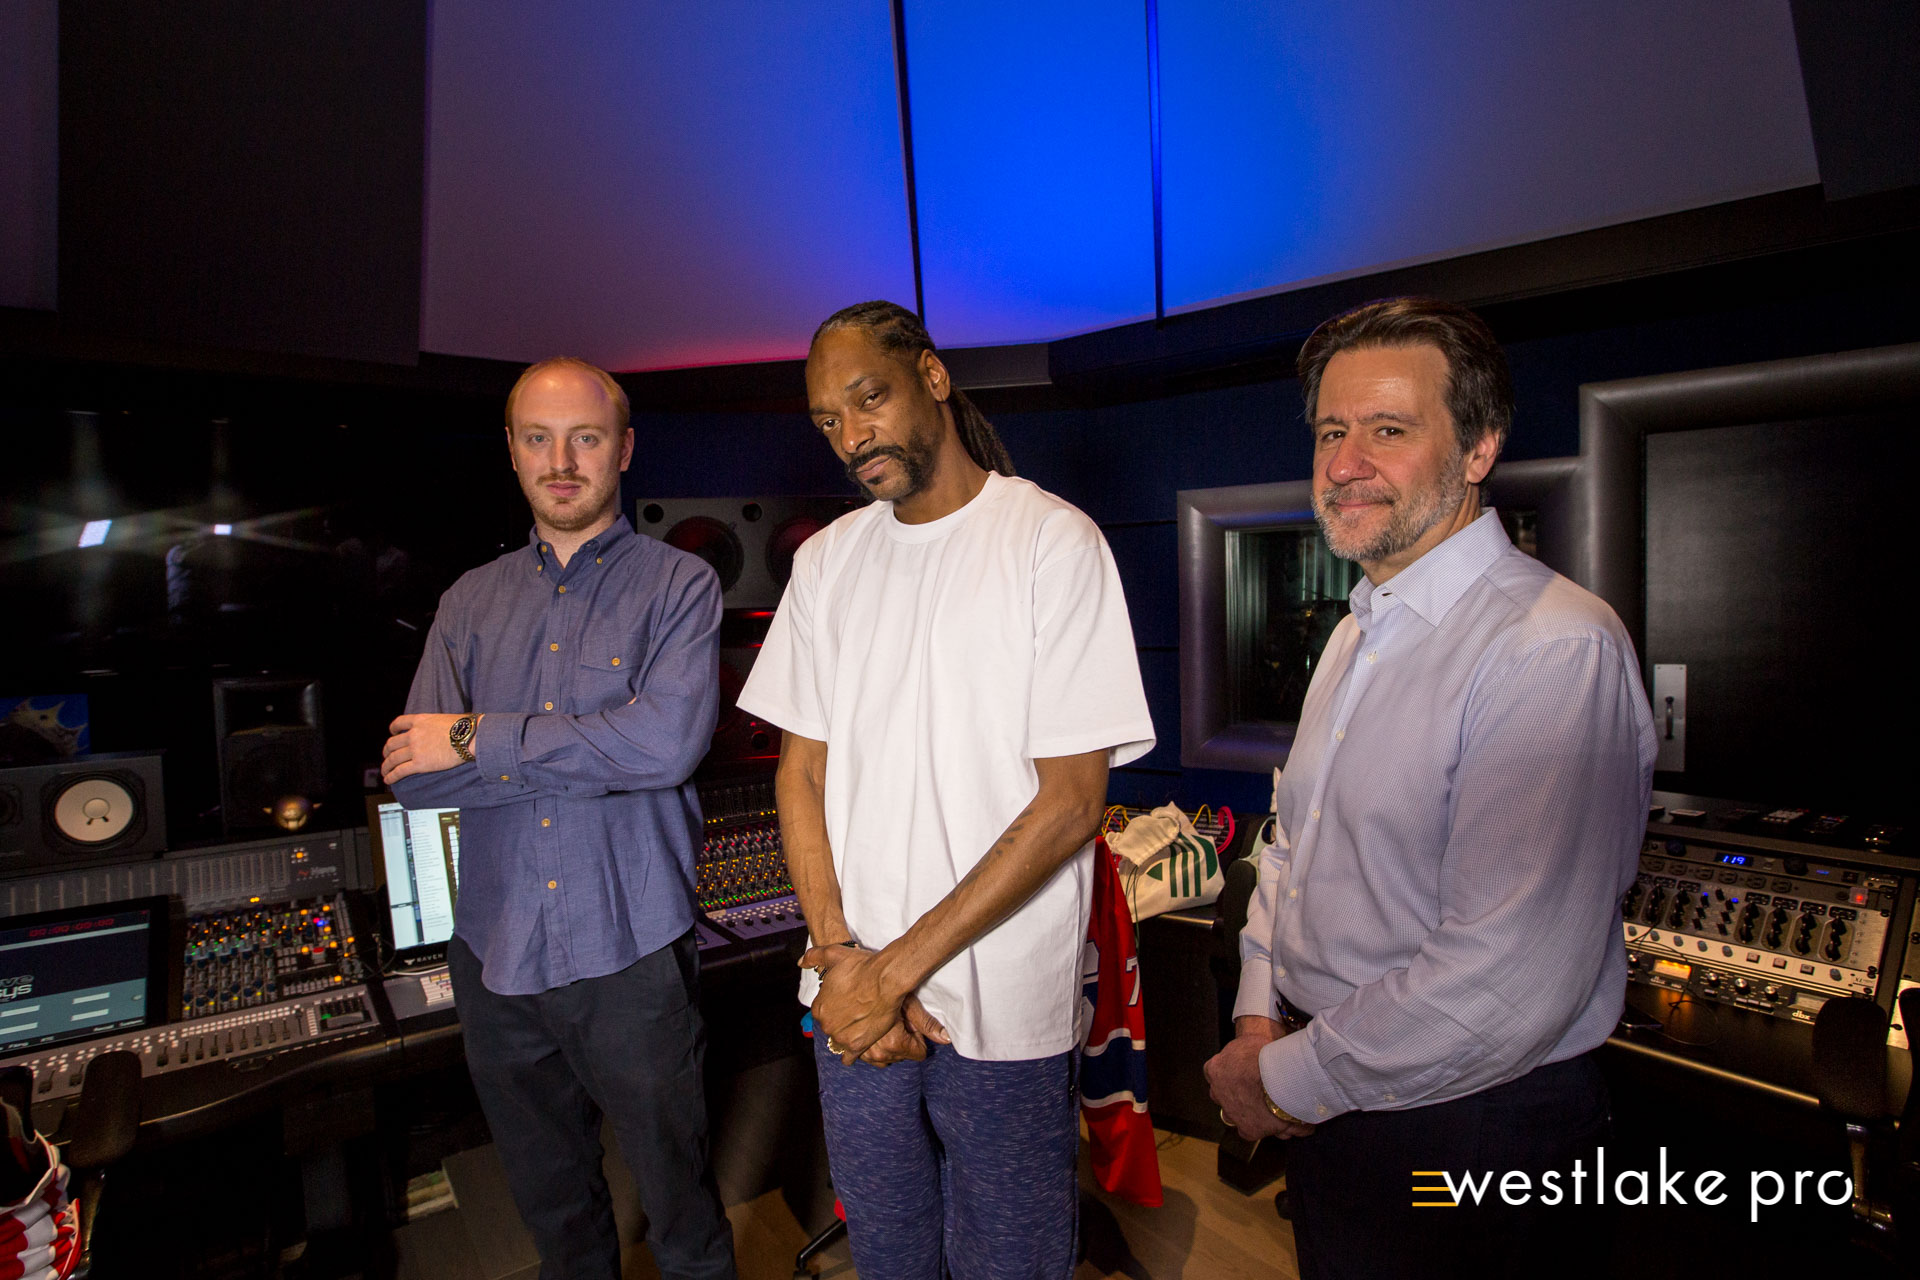 Jonathan Deans, Snoop Dogg, and George Adjieff